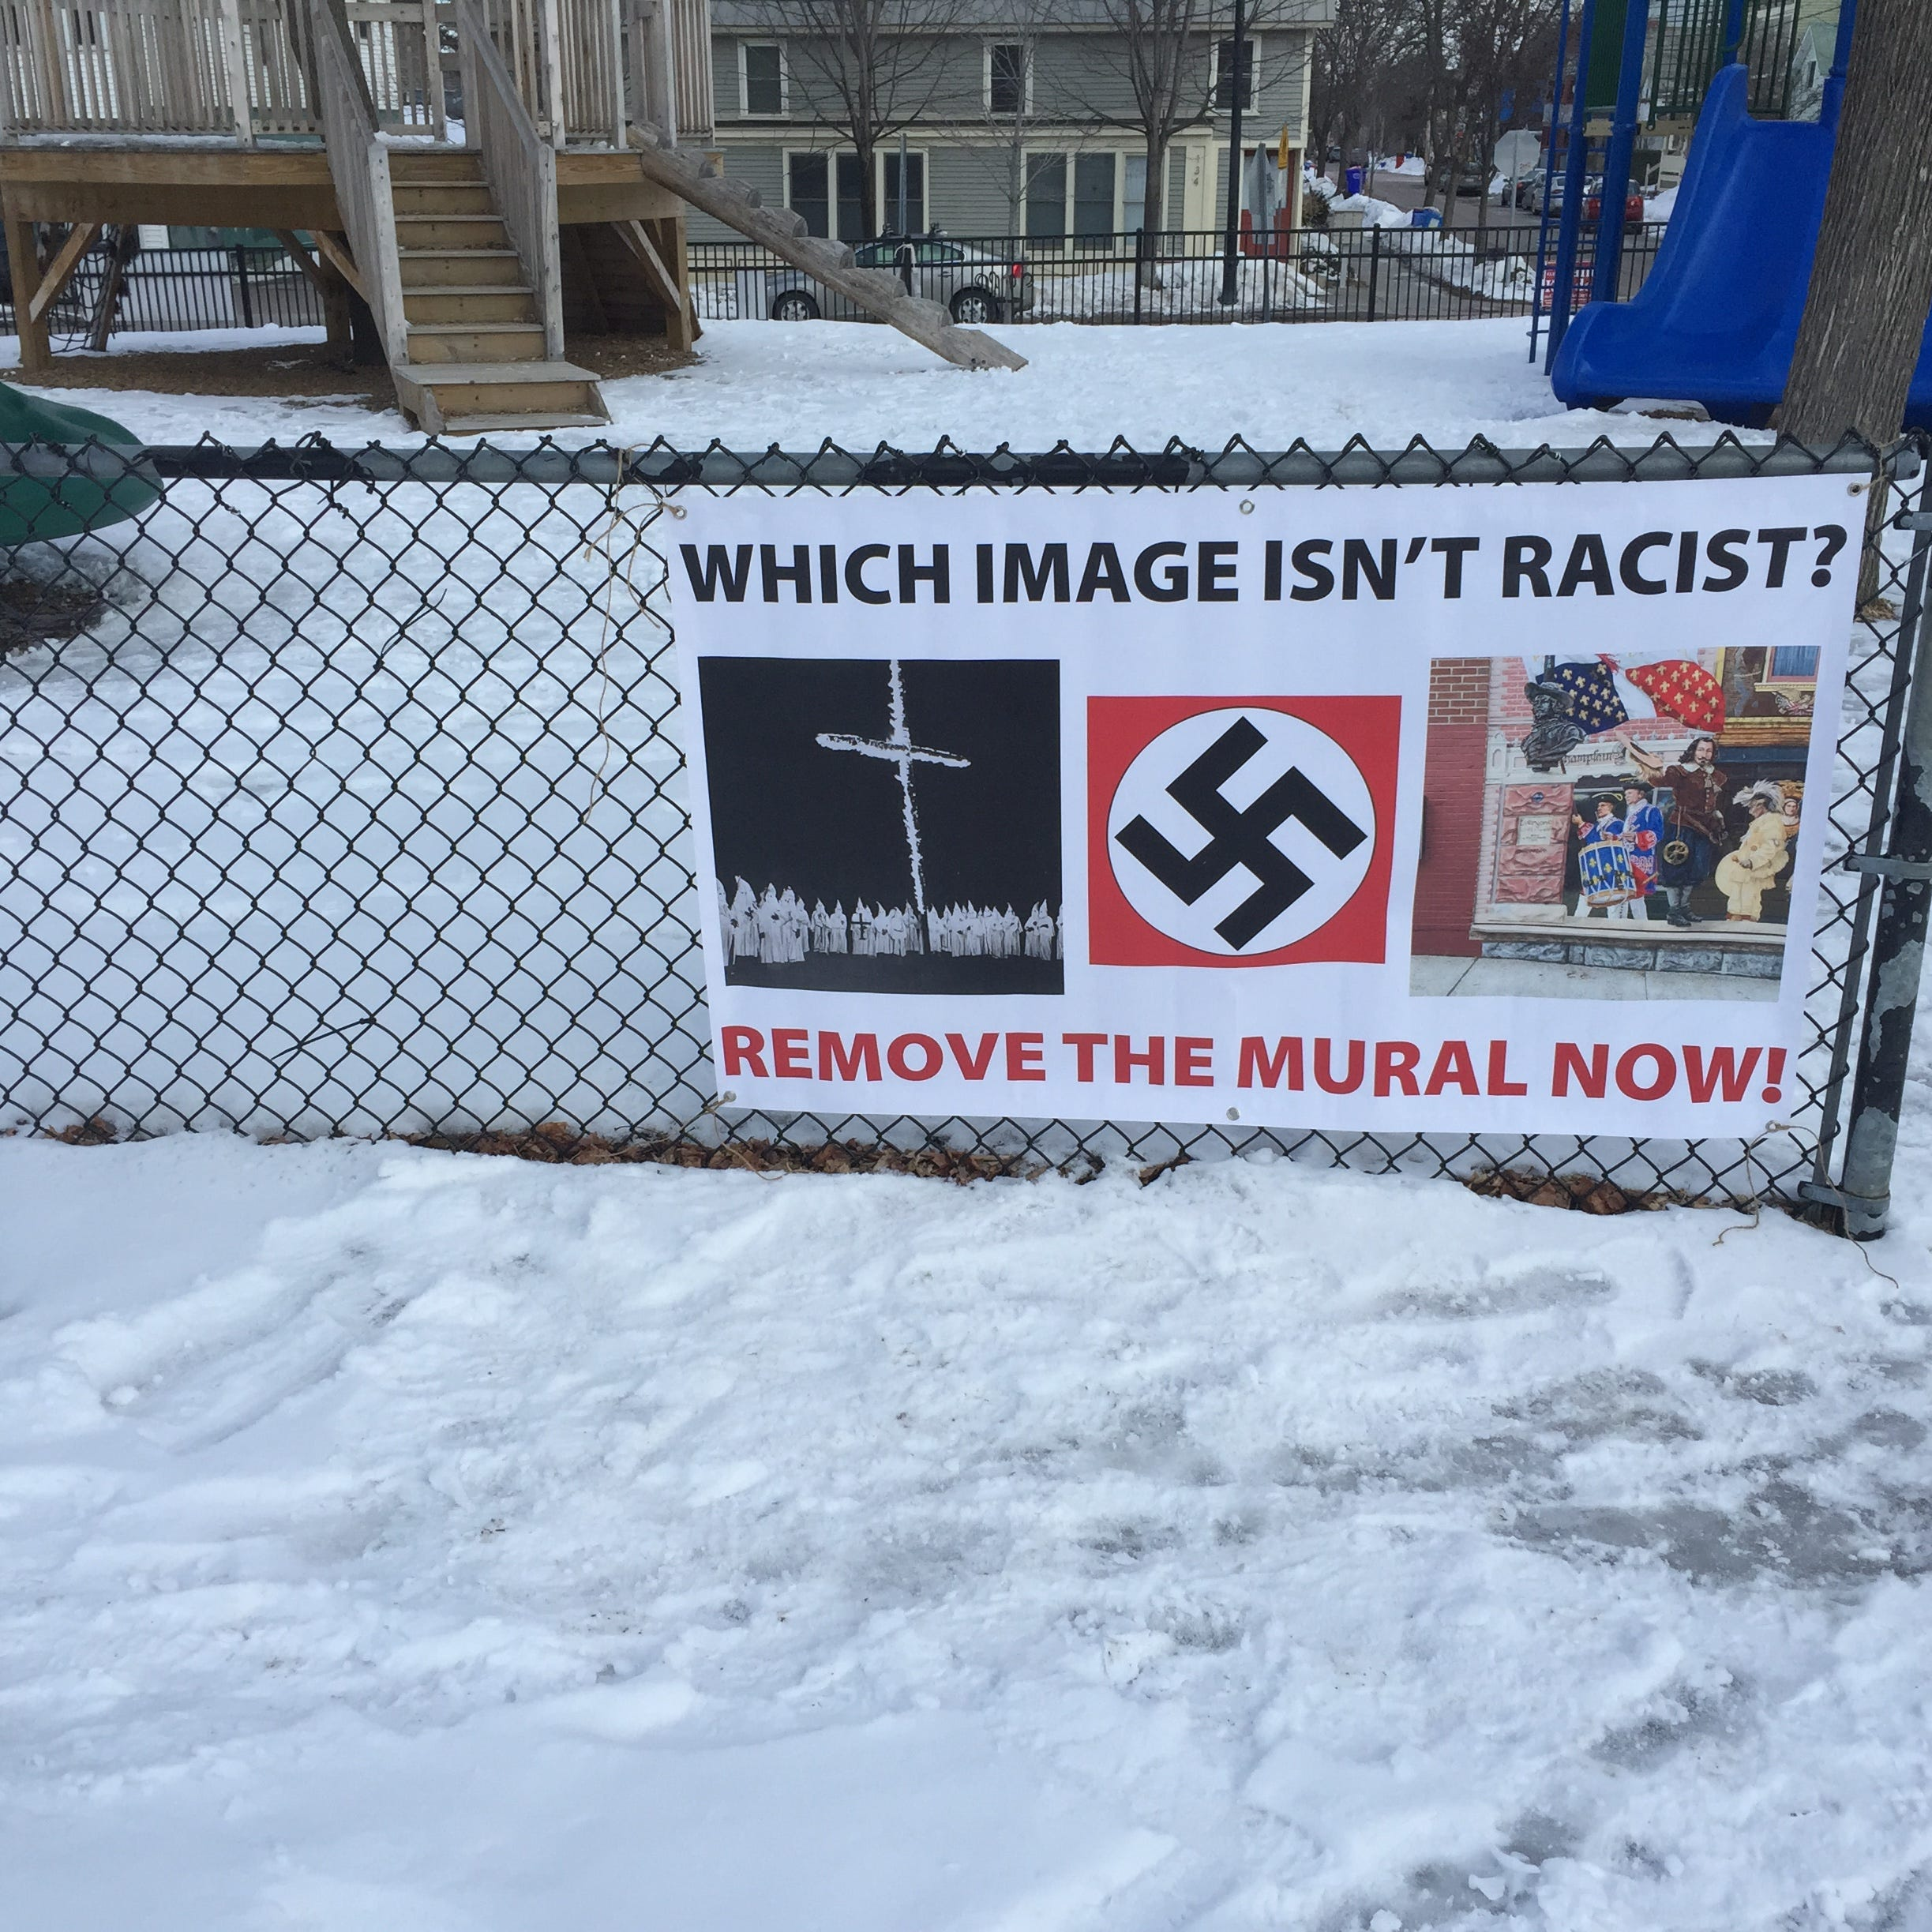 Cross burnings, swastikas, murals: Poster prompts discussion on free speech